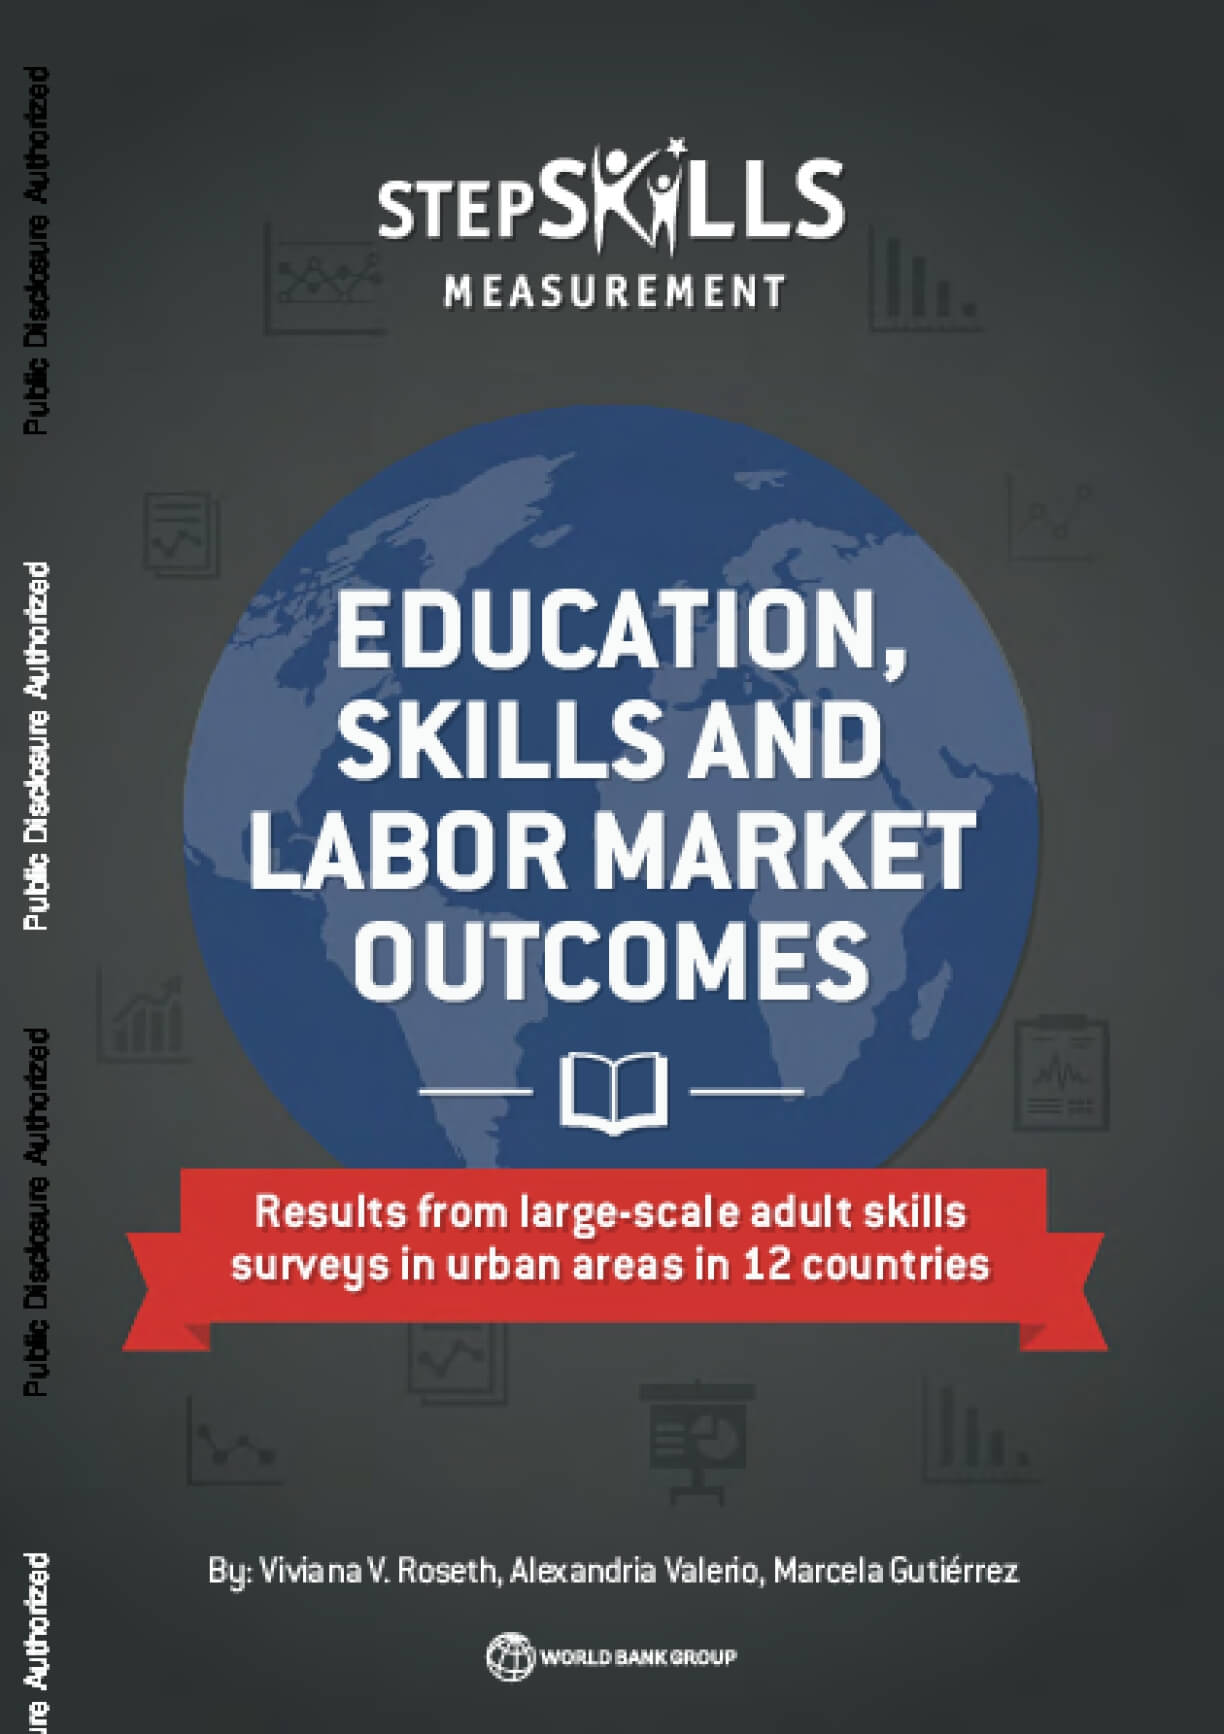 Education, Skills and Labor Market Outcomes: Results from Large-Scale Adult Skills Surveys in Urban Areas in 12 Countries